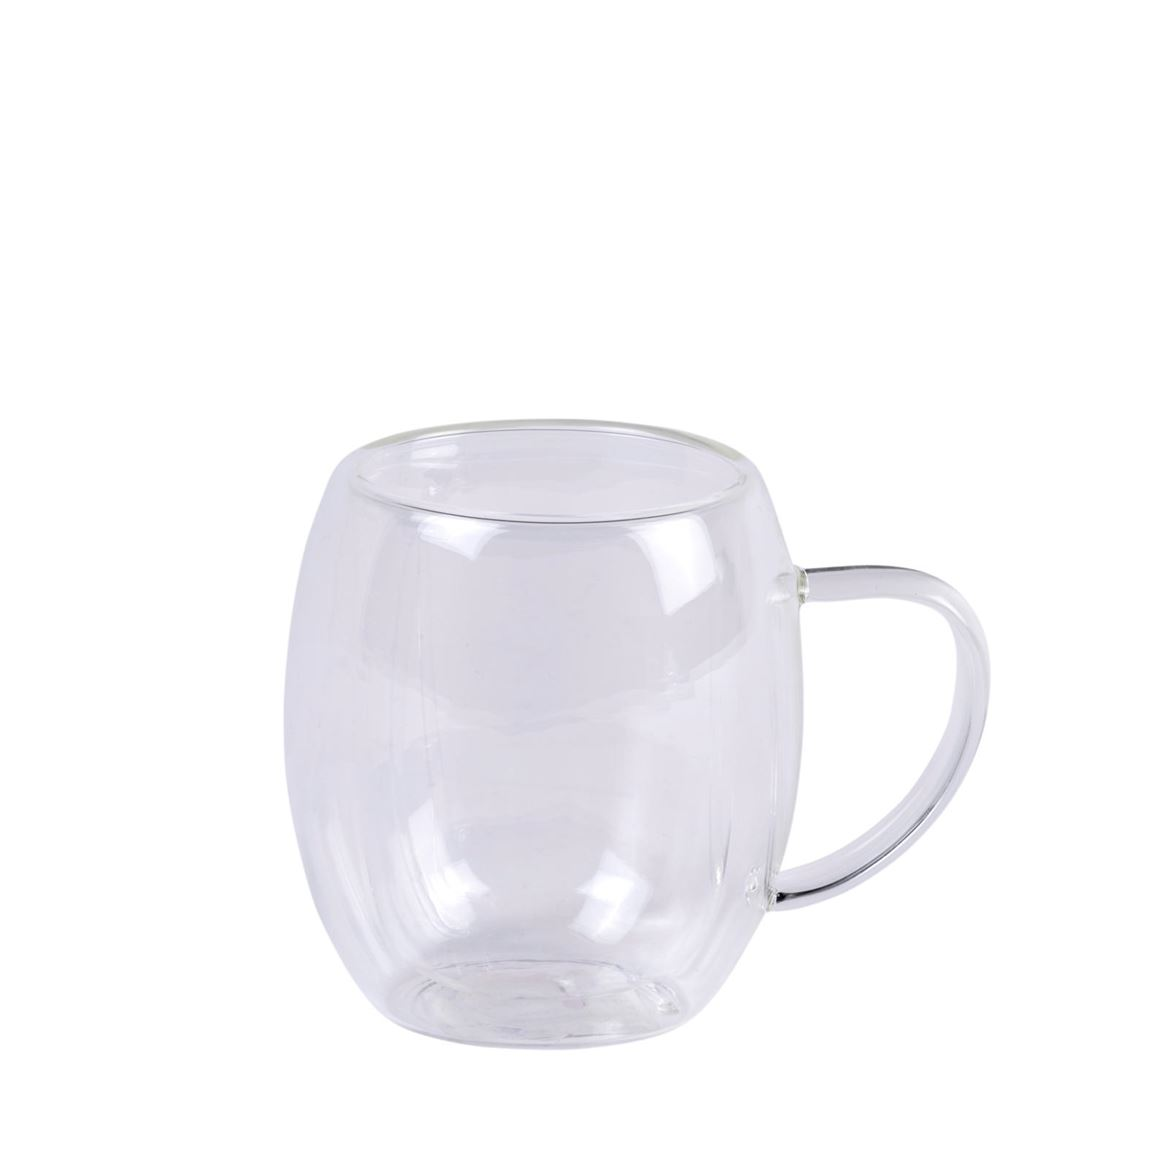 LAGOM Taza de doble pared transparente A 11 cm; Ø 8 cm_lagom-taza-de-doble-pared-transparente-a-11-cm;-ø-8-cm